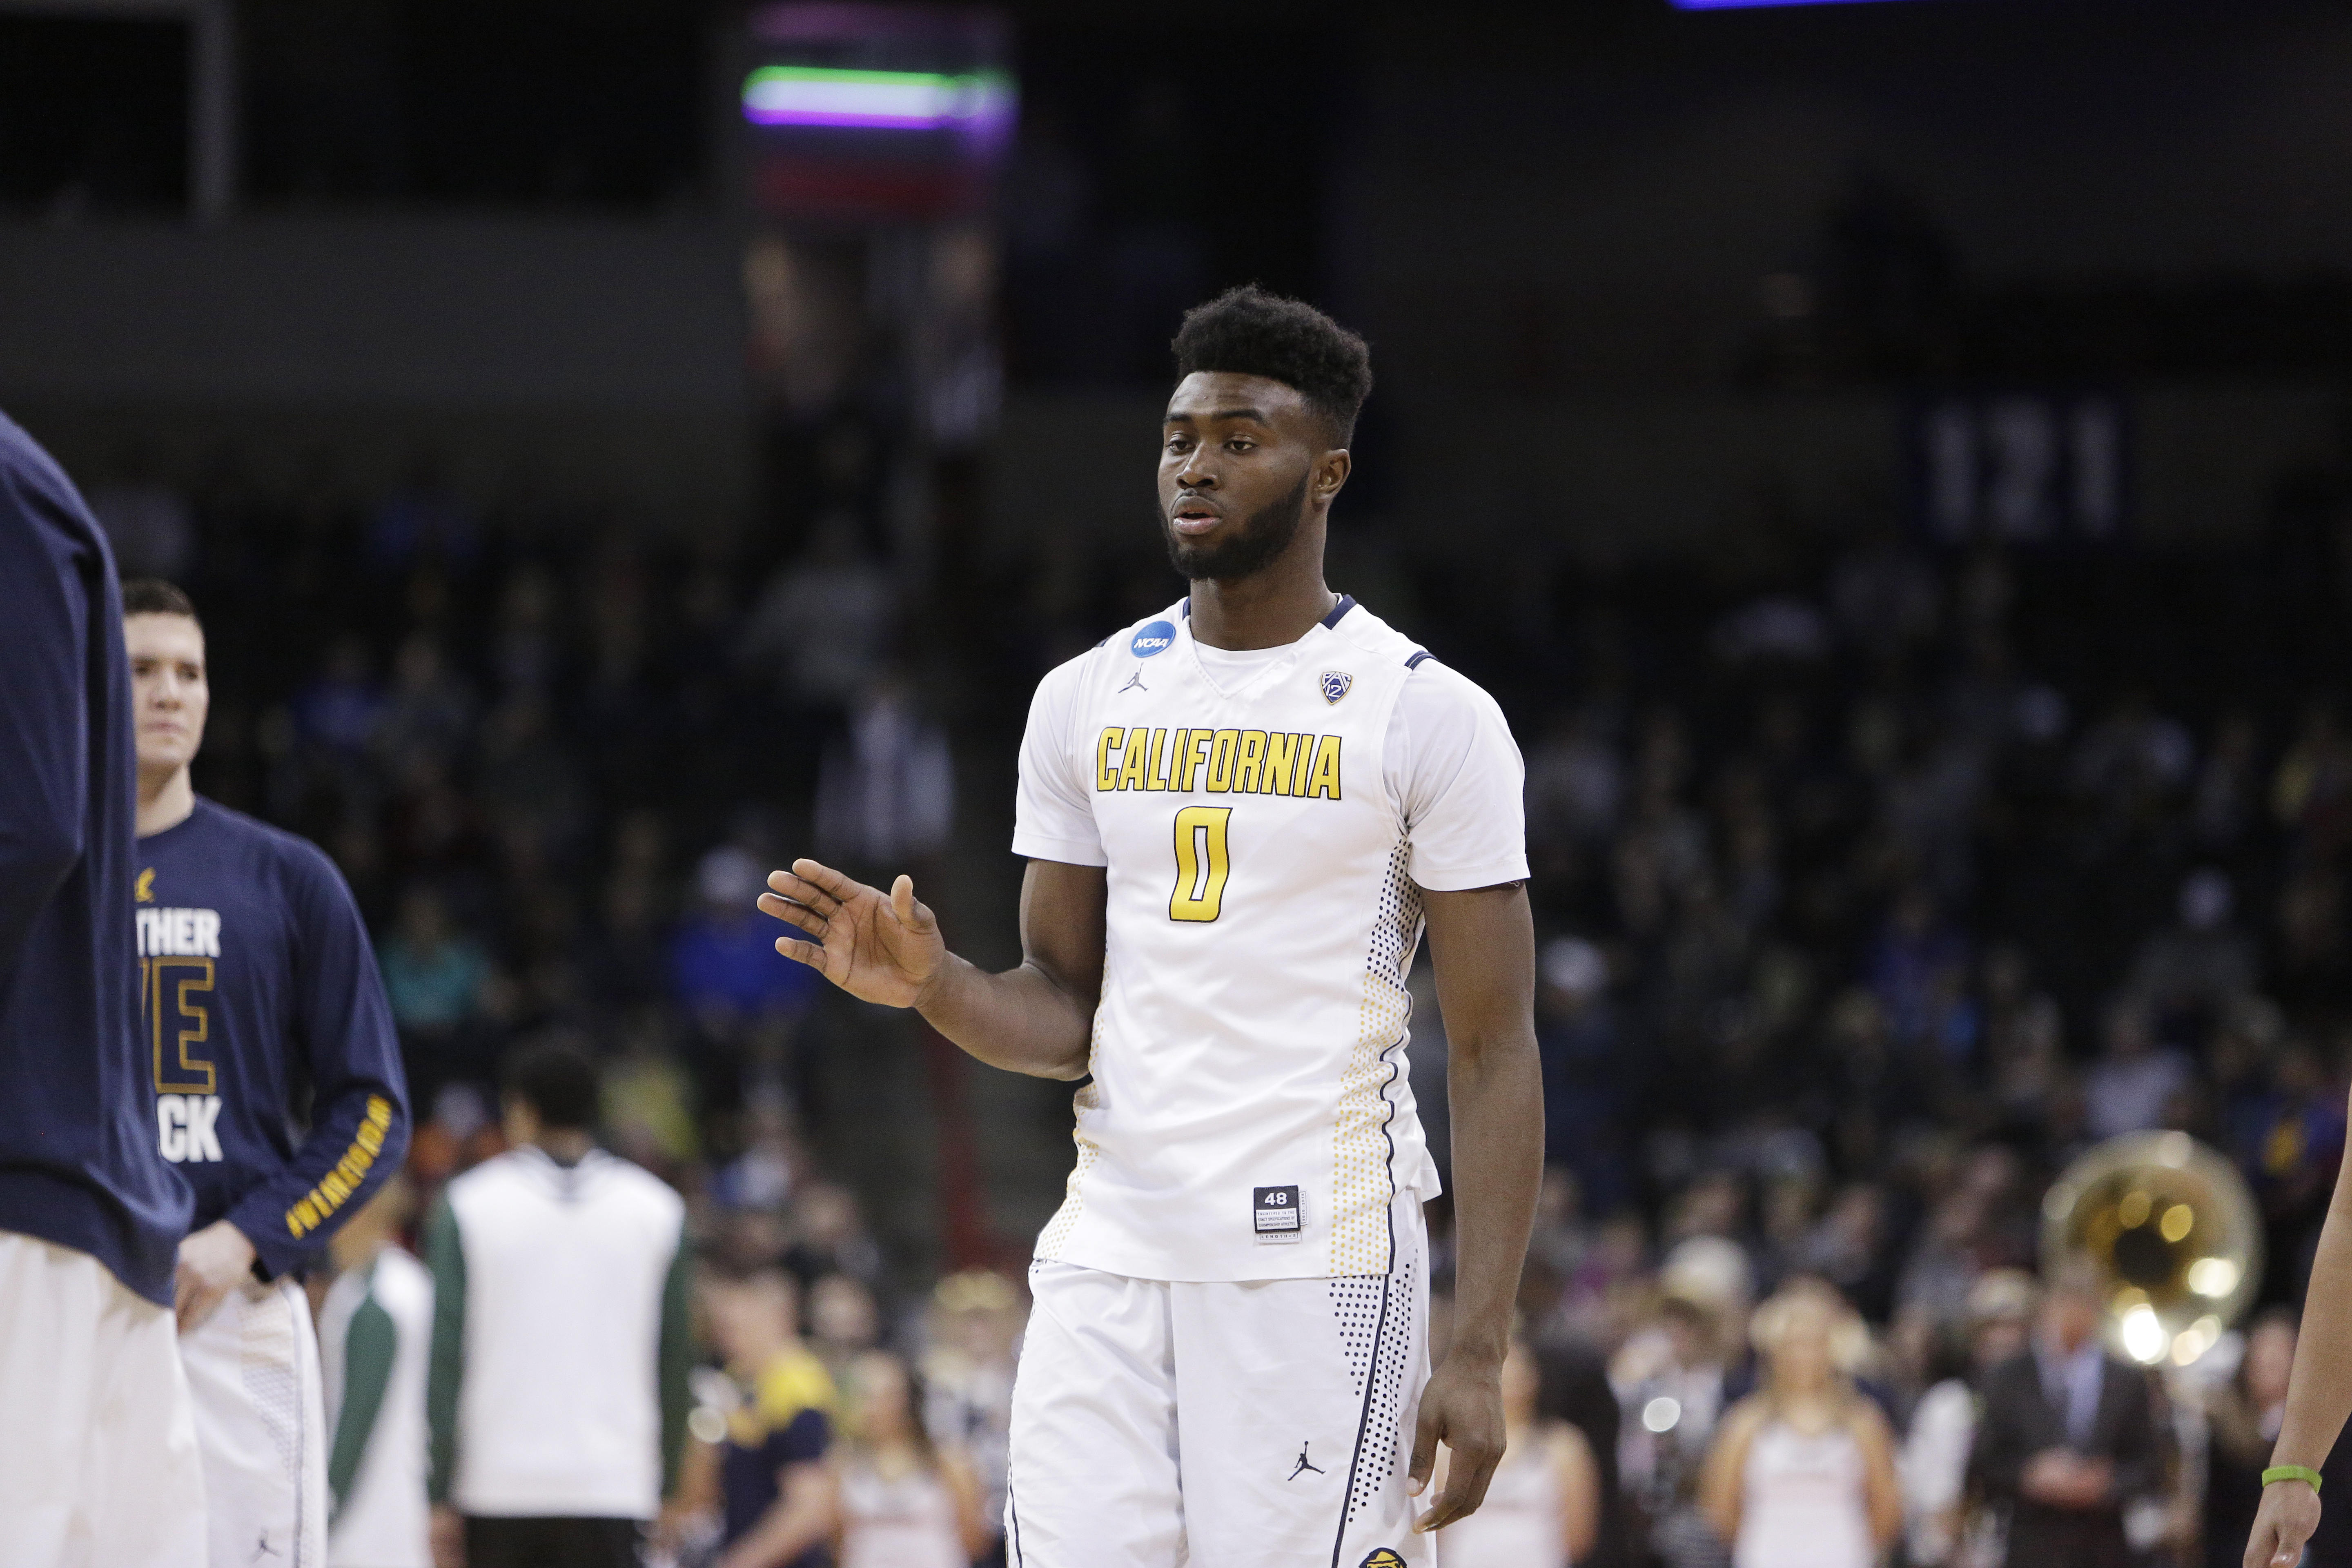 California forward Jaylen Brown (0) walks on the court before a first-round men's college basketball game against Hawaii in the NCAA Tournament in Spokane, Wash., Friday, March 18, 2016. (AP Photo/Young Kwak)